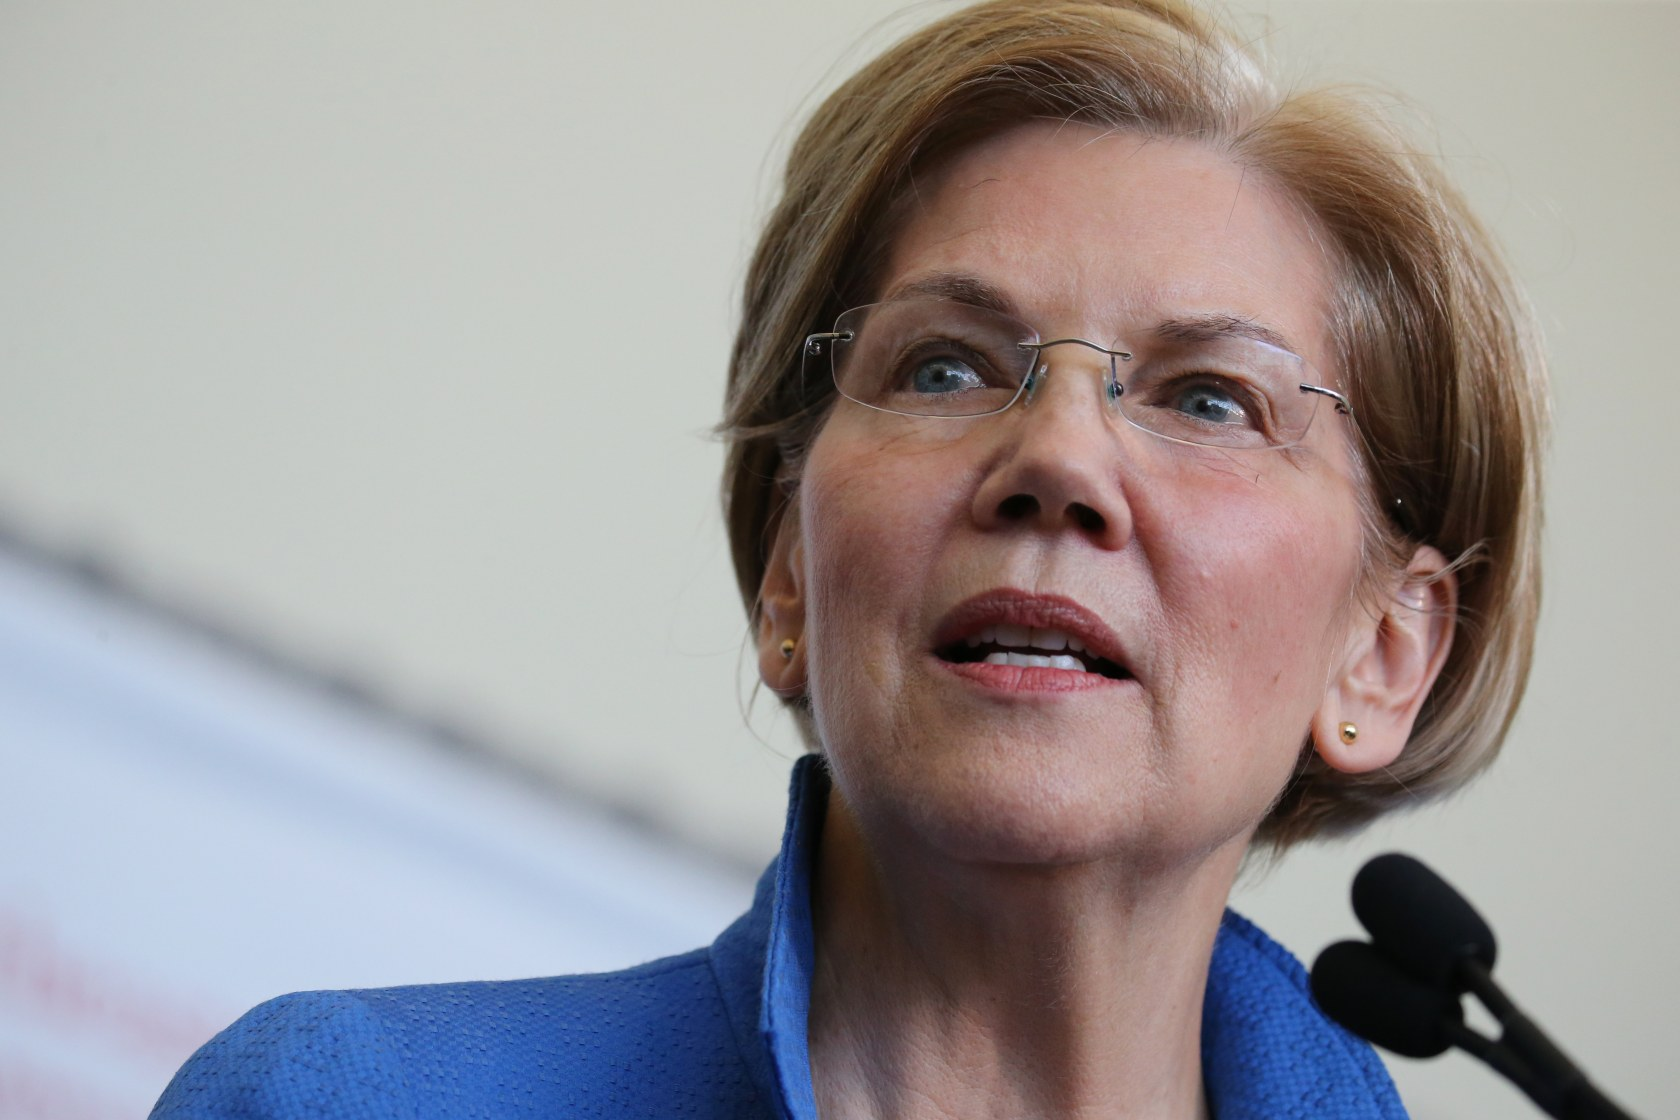 Warren leads Biden in new Quinnipiac poll